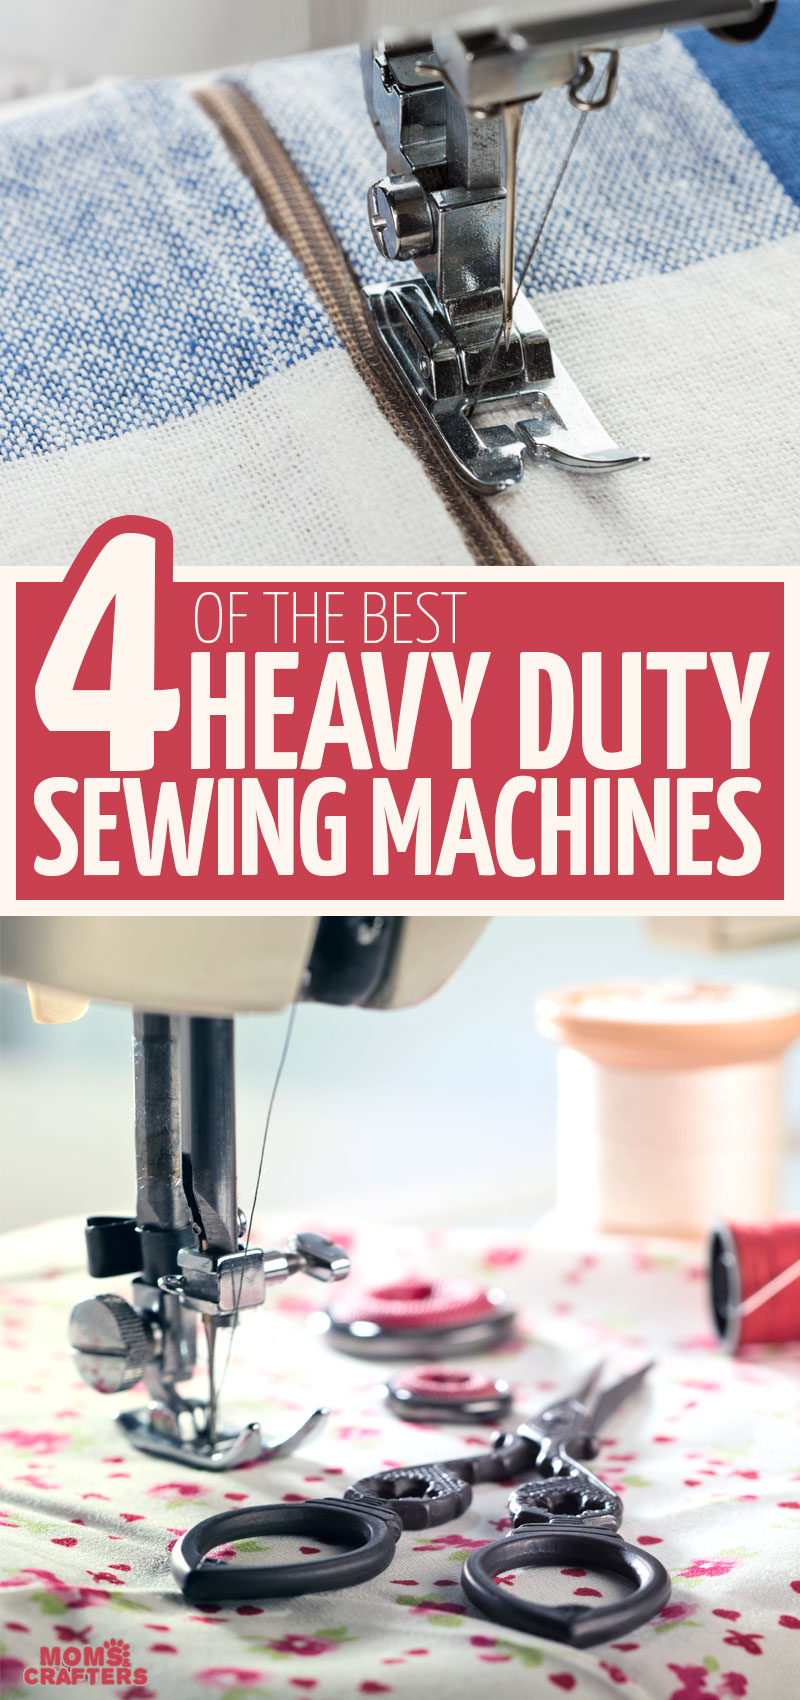 Click for a list of the best heavy duty sewing machine for sewing heavyweight fabrics like denim jeans, burlap, and other industrial fabrics. You'll find more sewing tips for buying a new sewing machine.